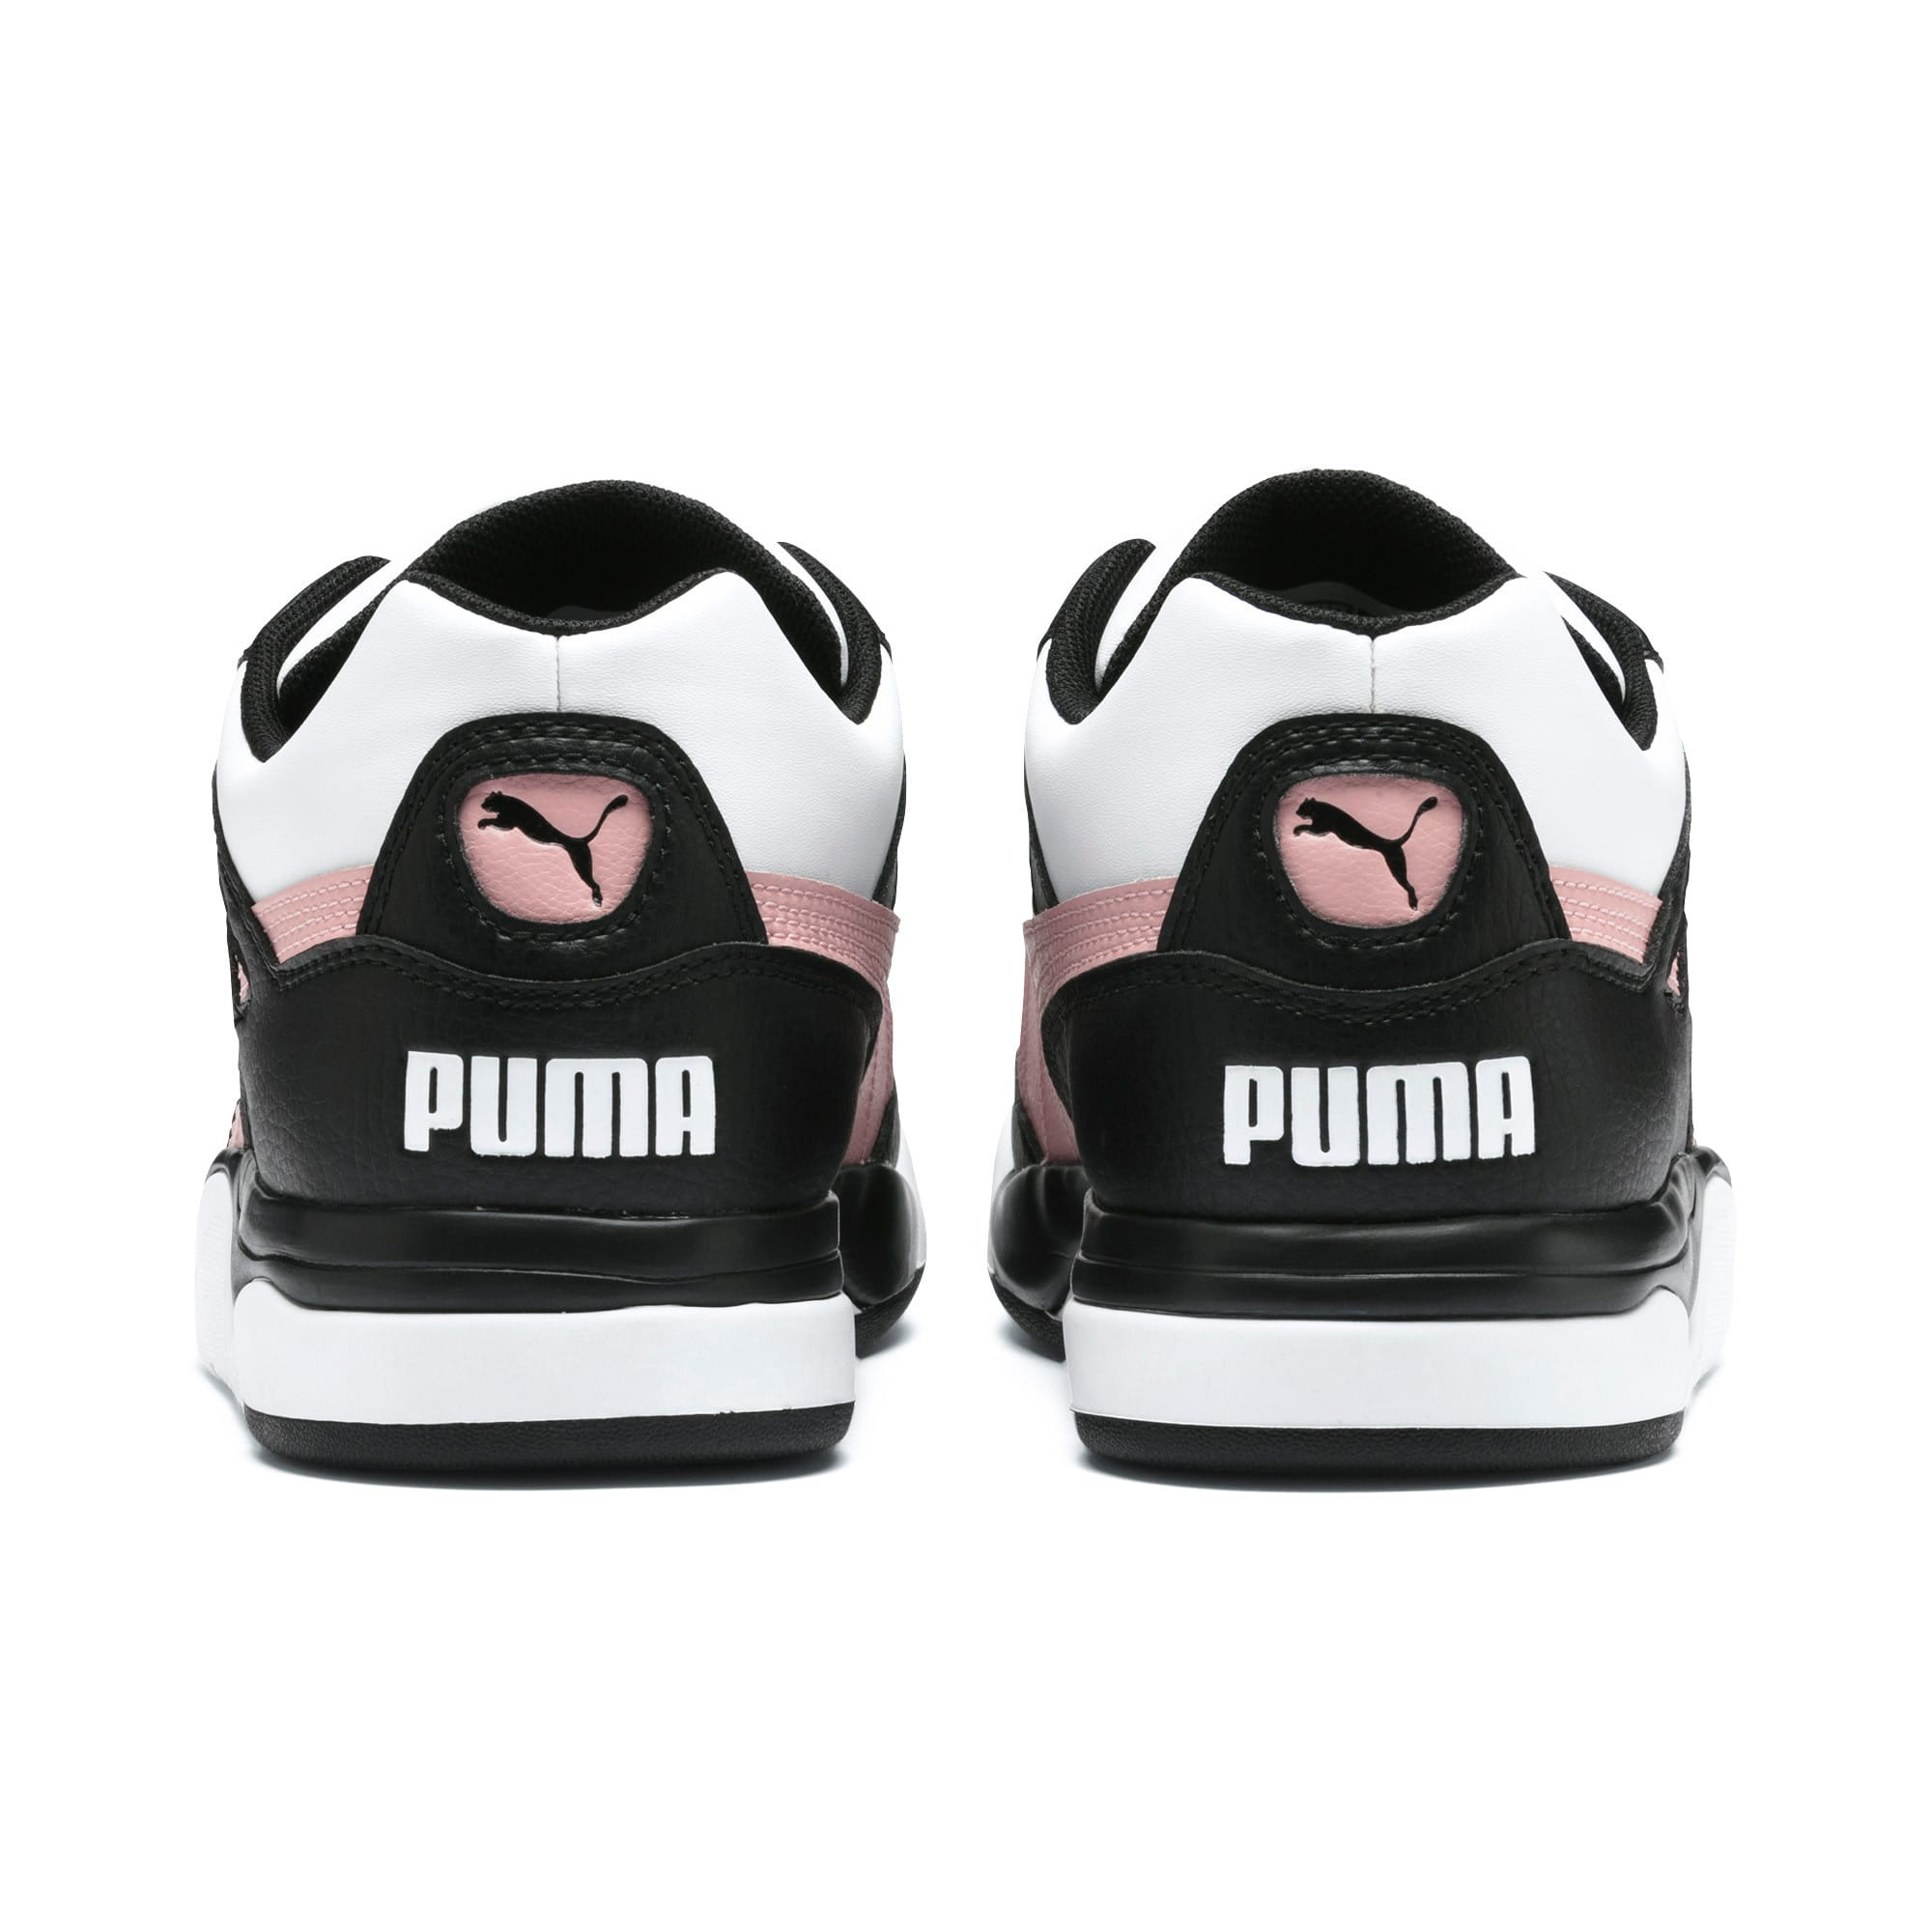 Thumbnail 4 of Basket Palace Guard Colour Block pour femme, Puma Black-Puma White, medium